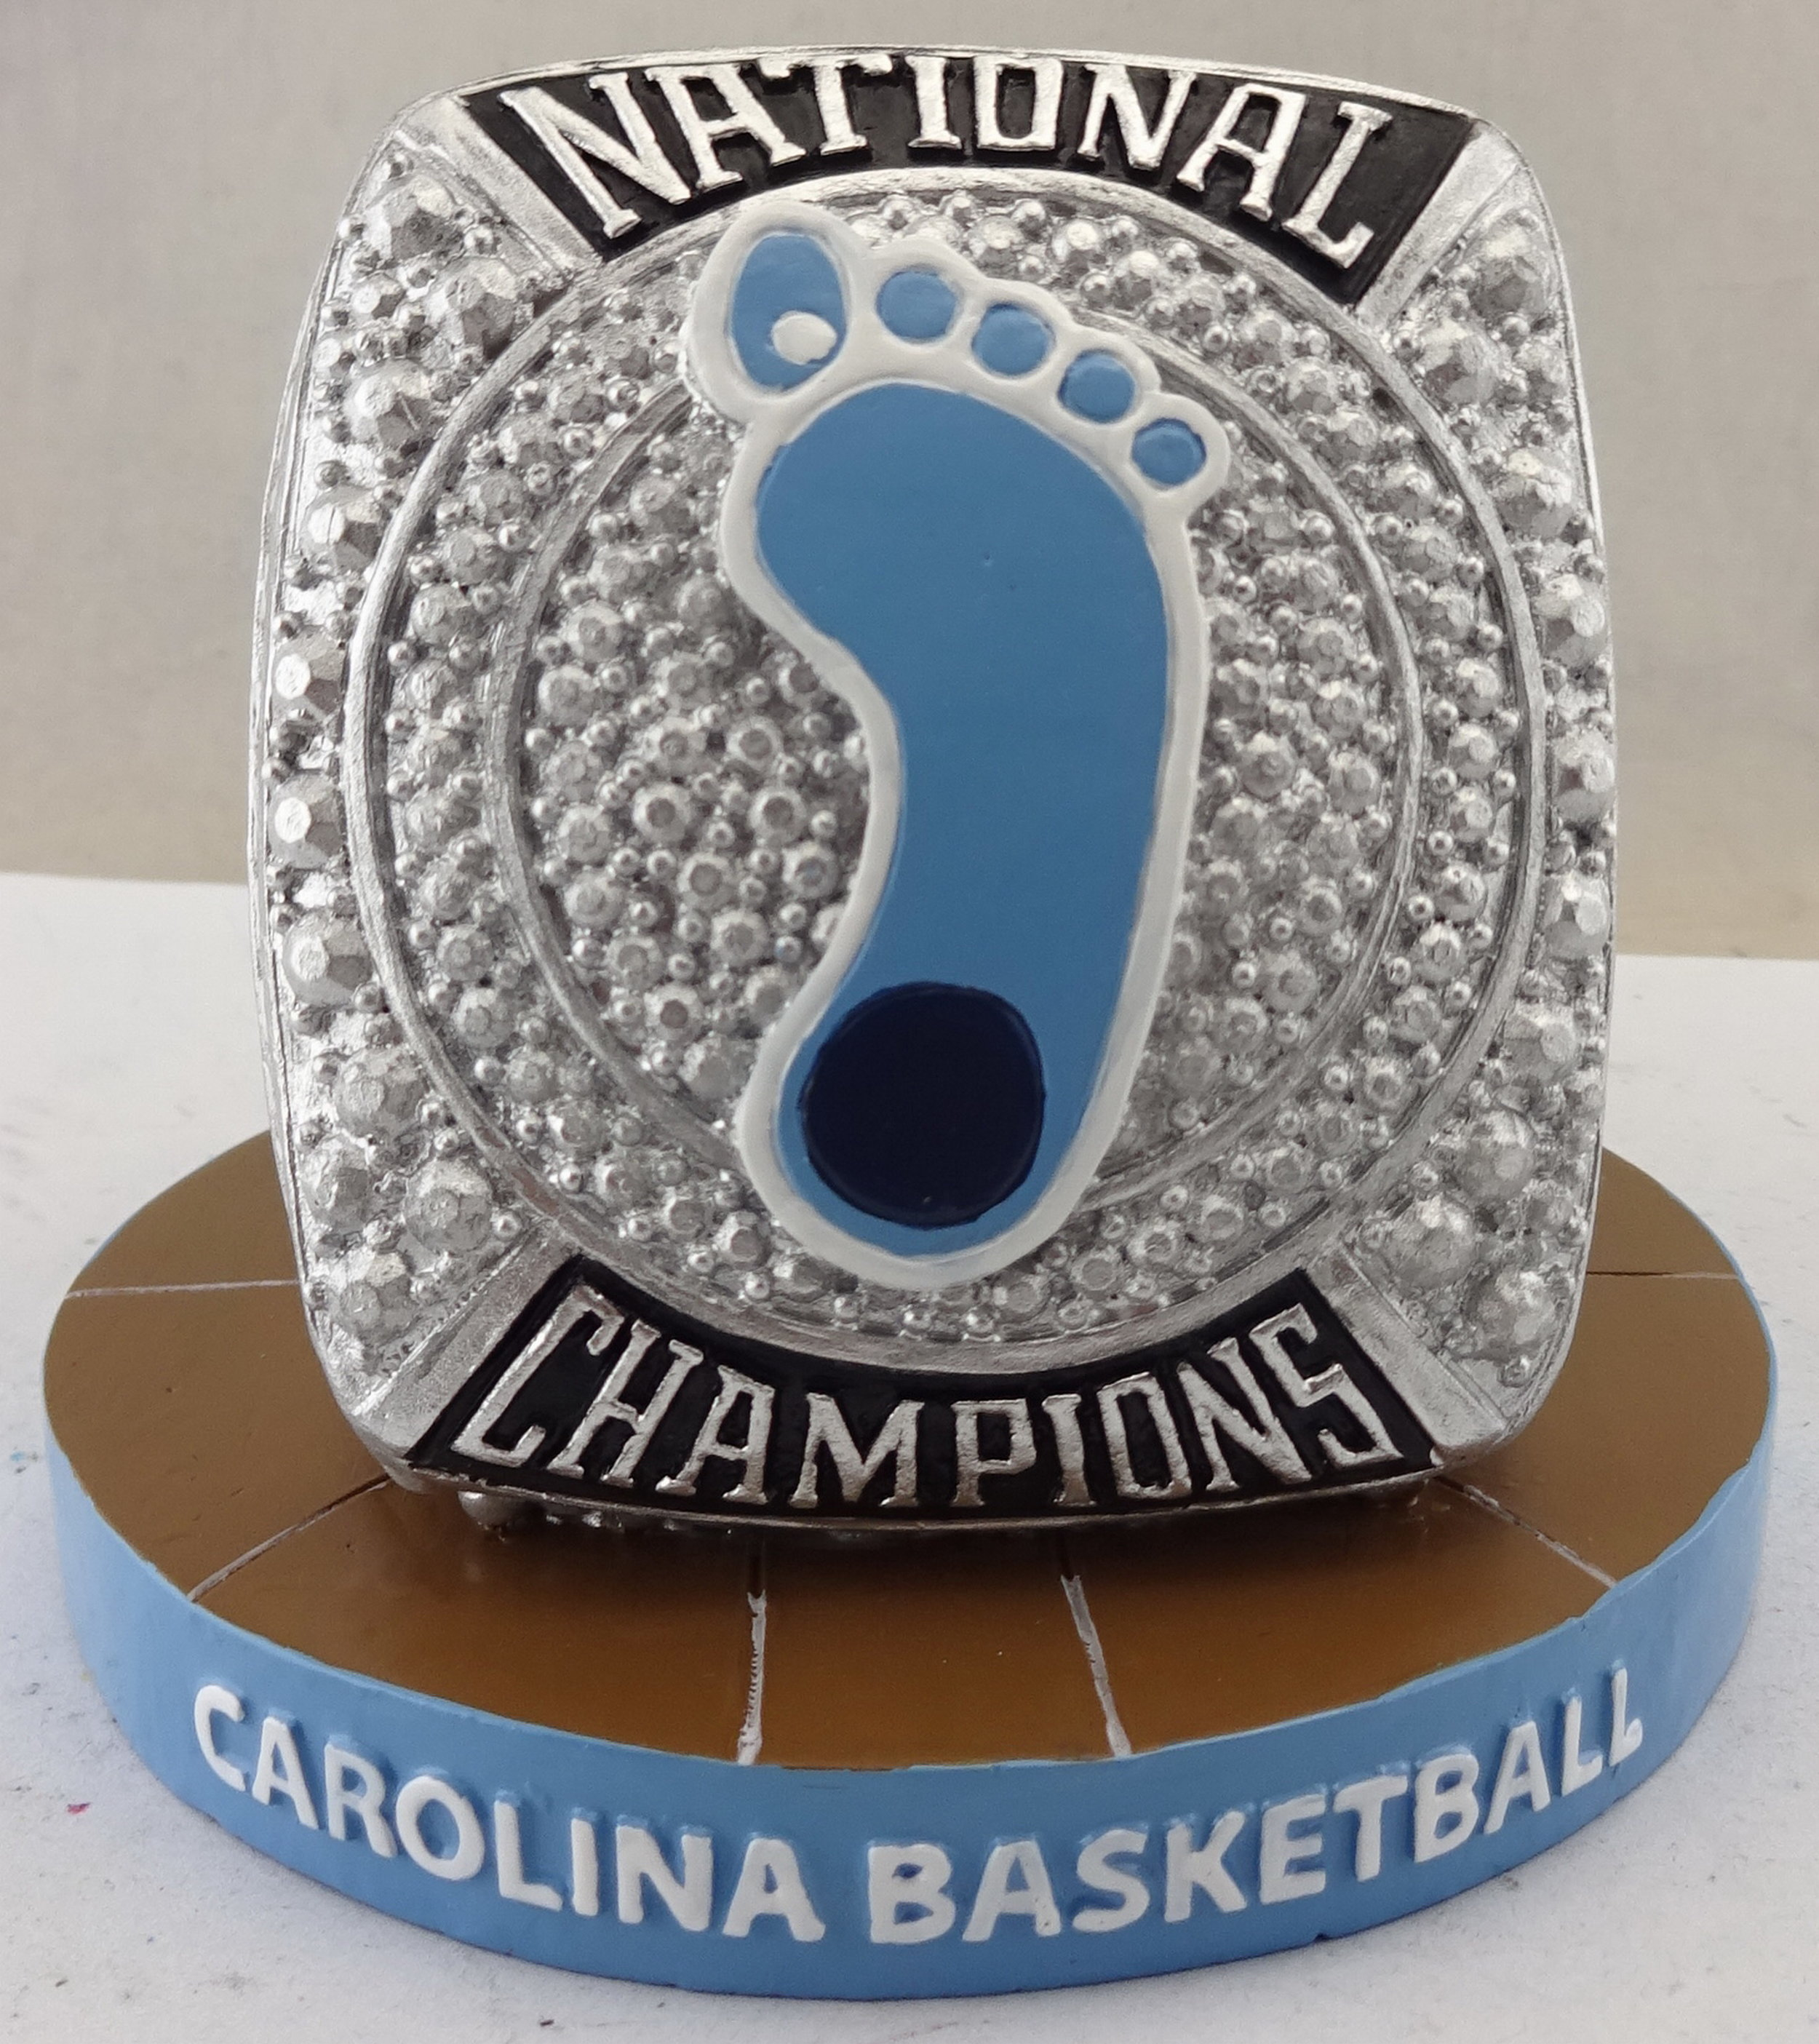 University of North Carolina - Basketball Ring Replica PN#113079 (1).jpg